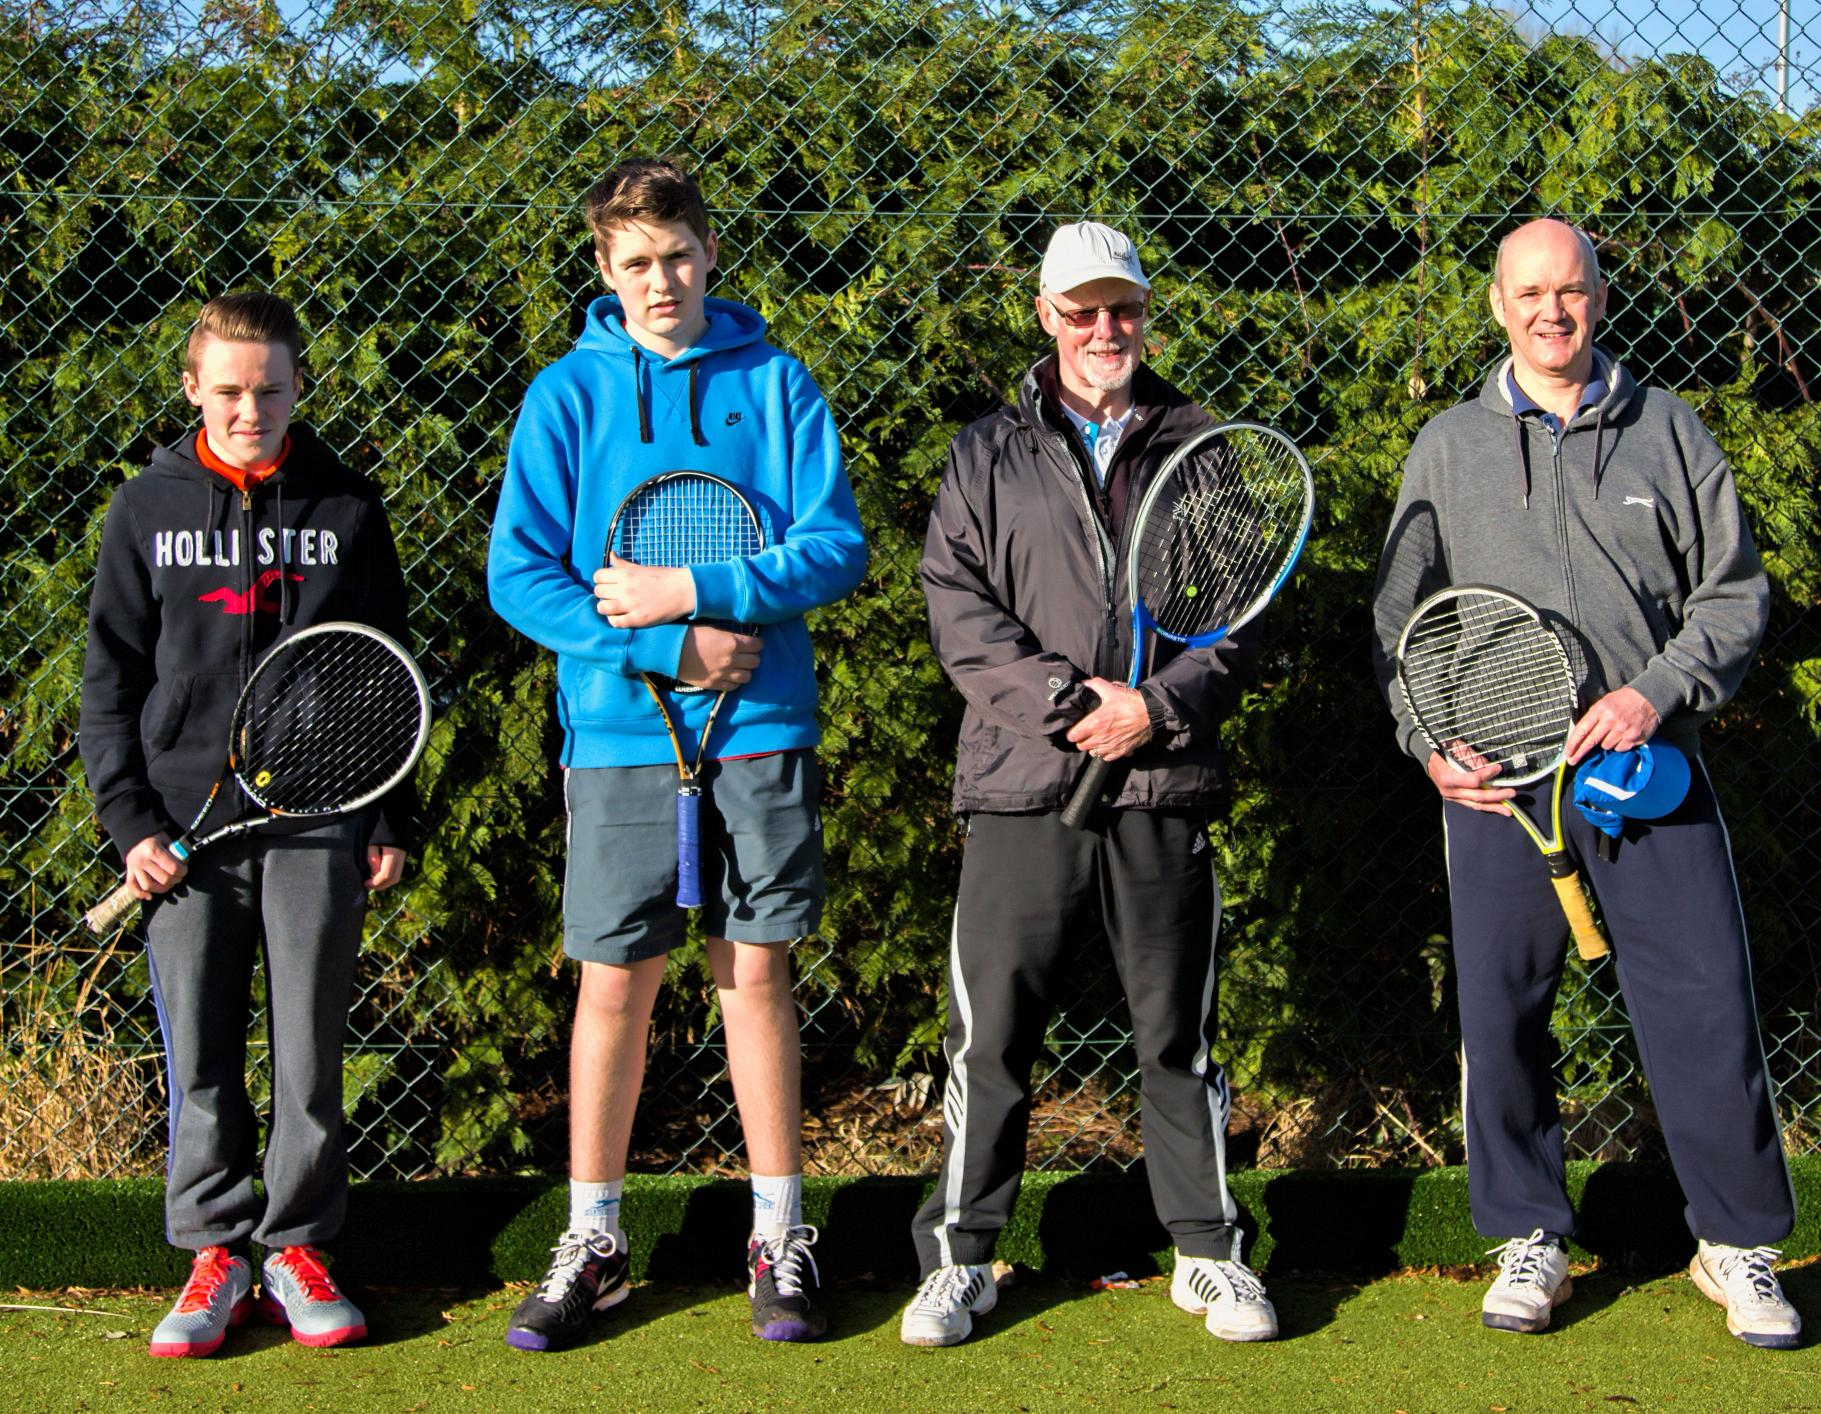 Bromsgrove Men's F team of Aaron Oakes, Ollie Stratford, Stuart Roney and captain Paul Jubb.